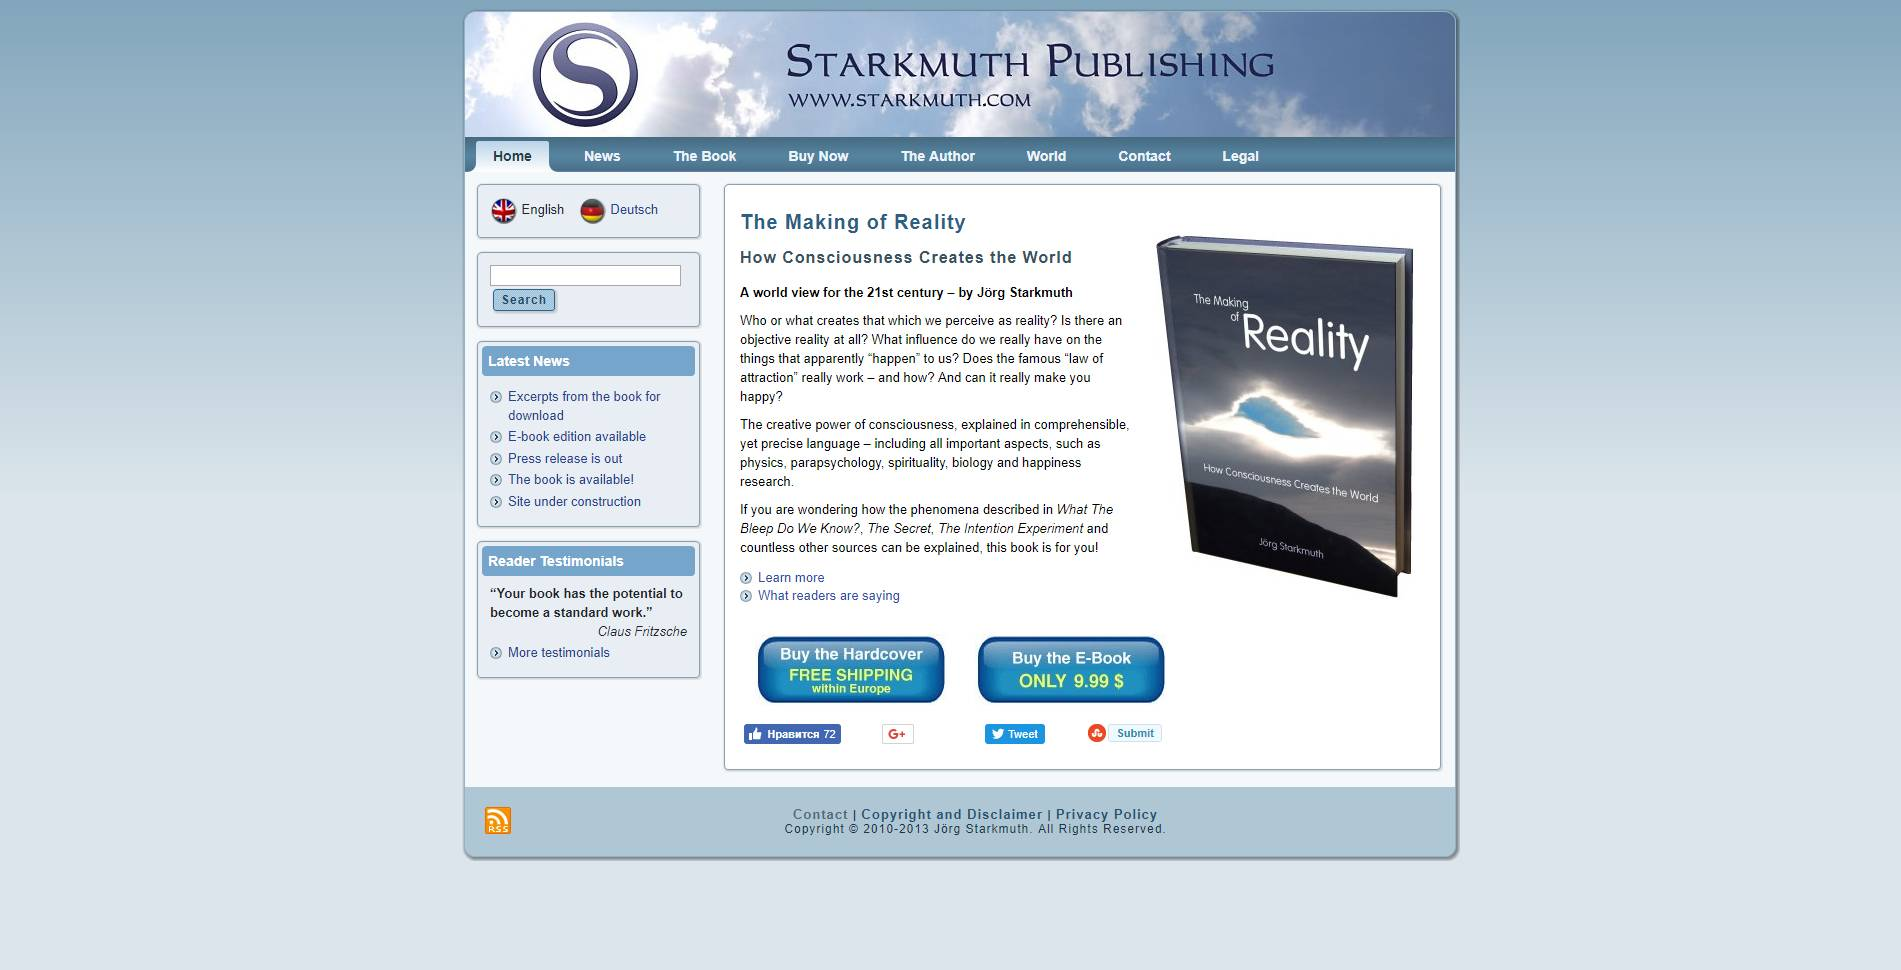 Starkmuth Publishing